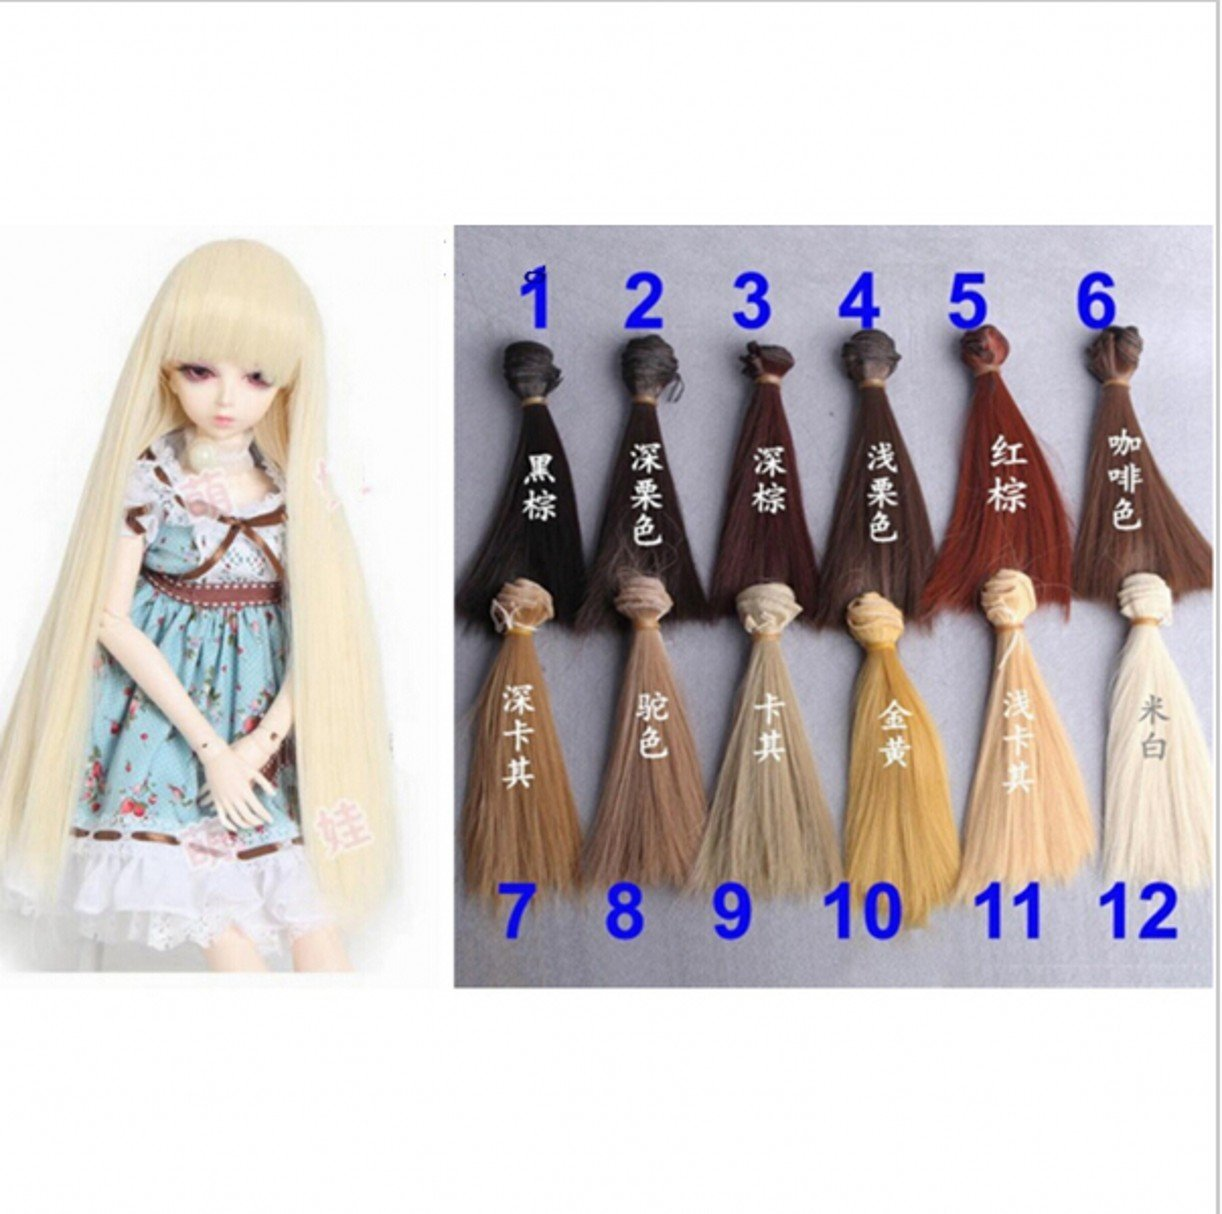 CHENGYIDA Lot Of 12 Multi-color DIY BJD SD Straight Doll Wigs Synthetic Hair For Dolls 15 * 100cm Ltd